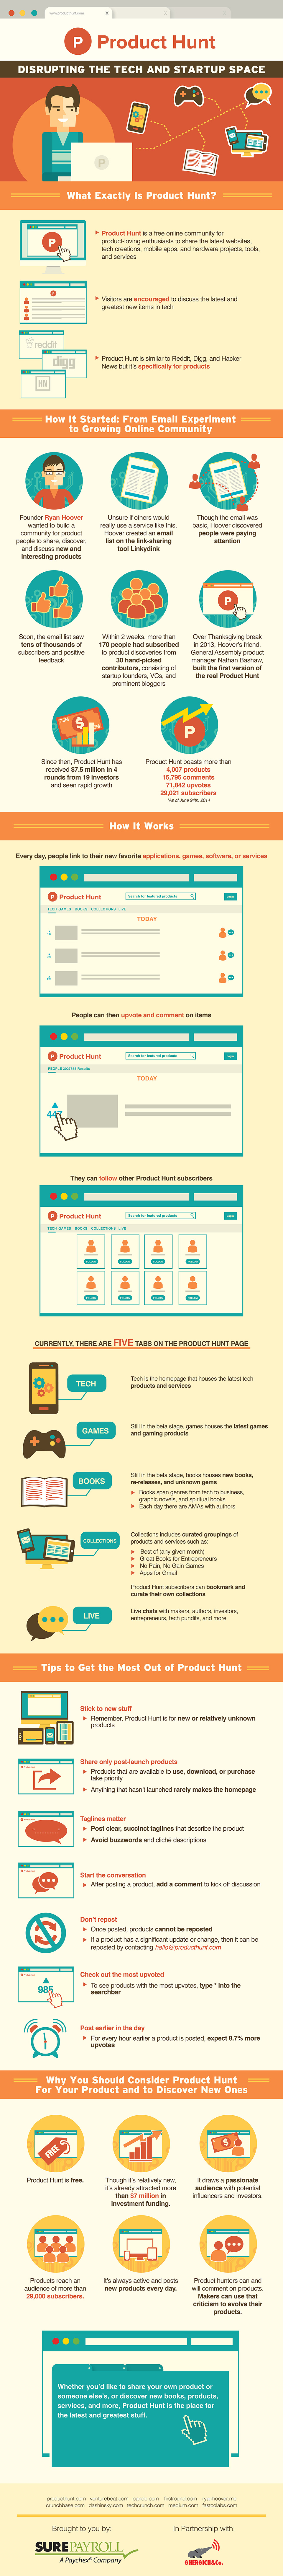 Product Hunt Infographic